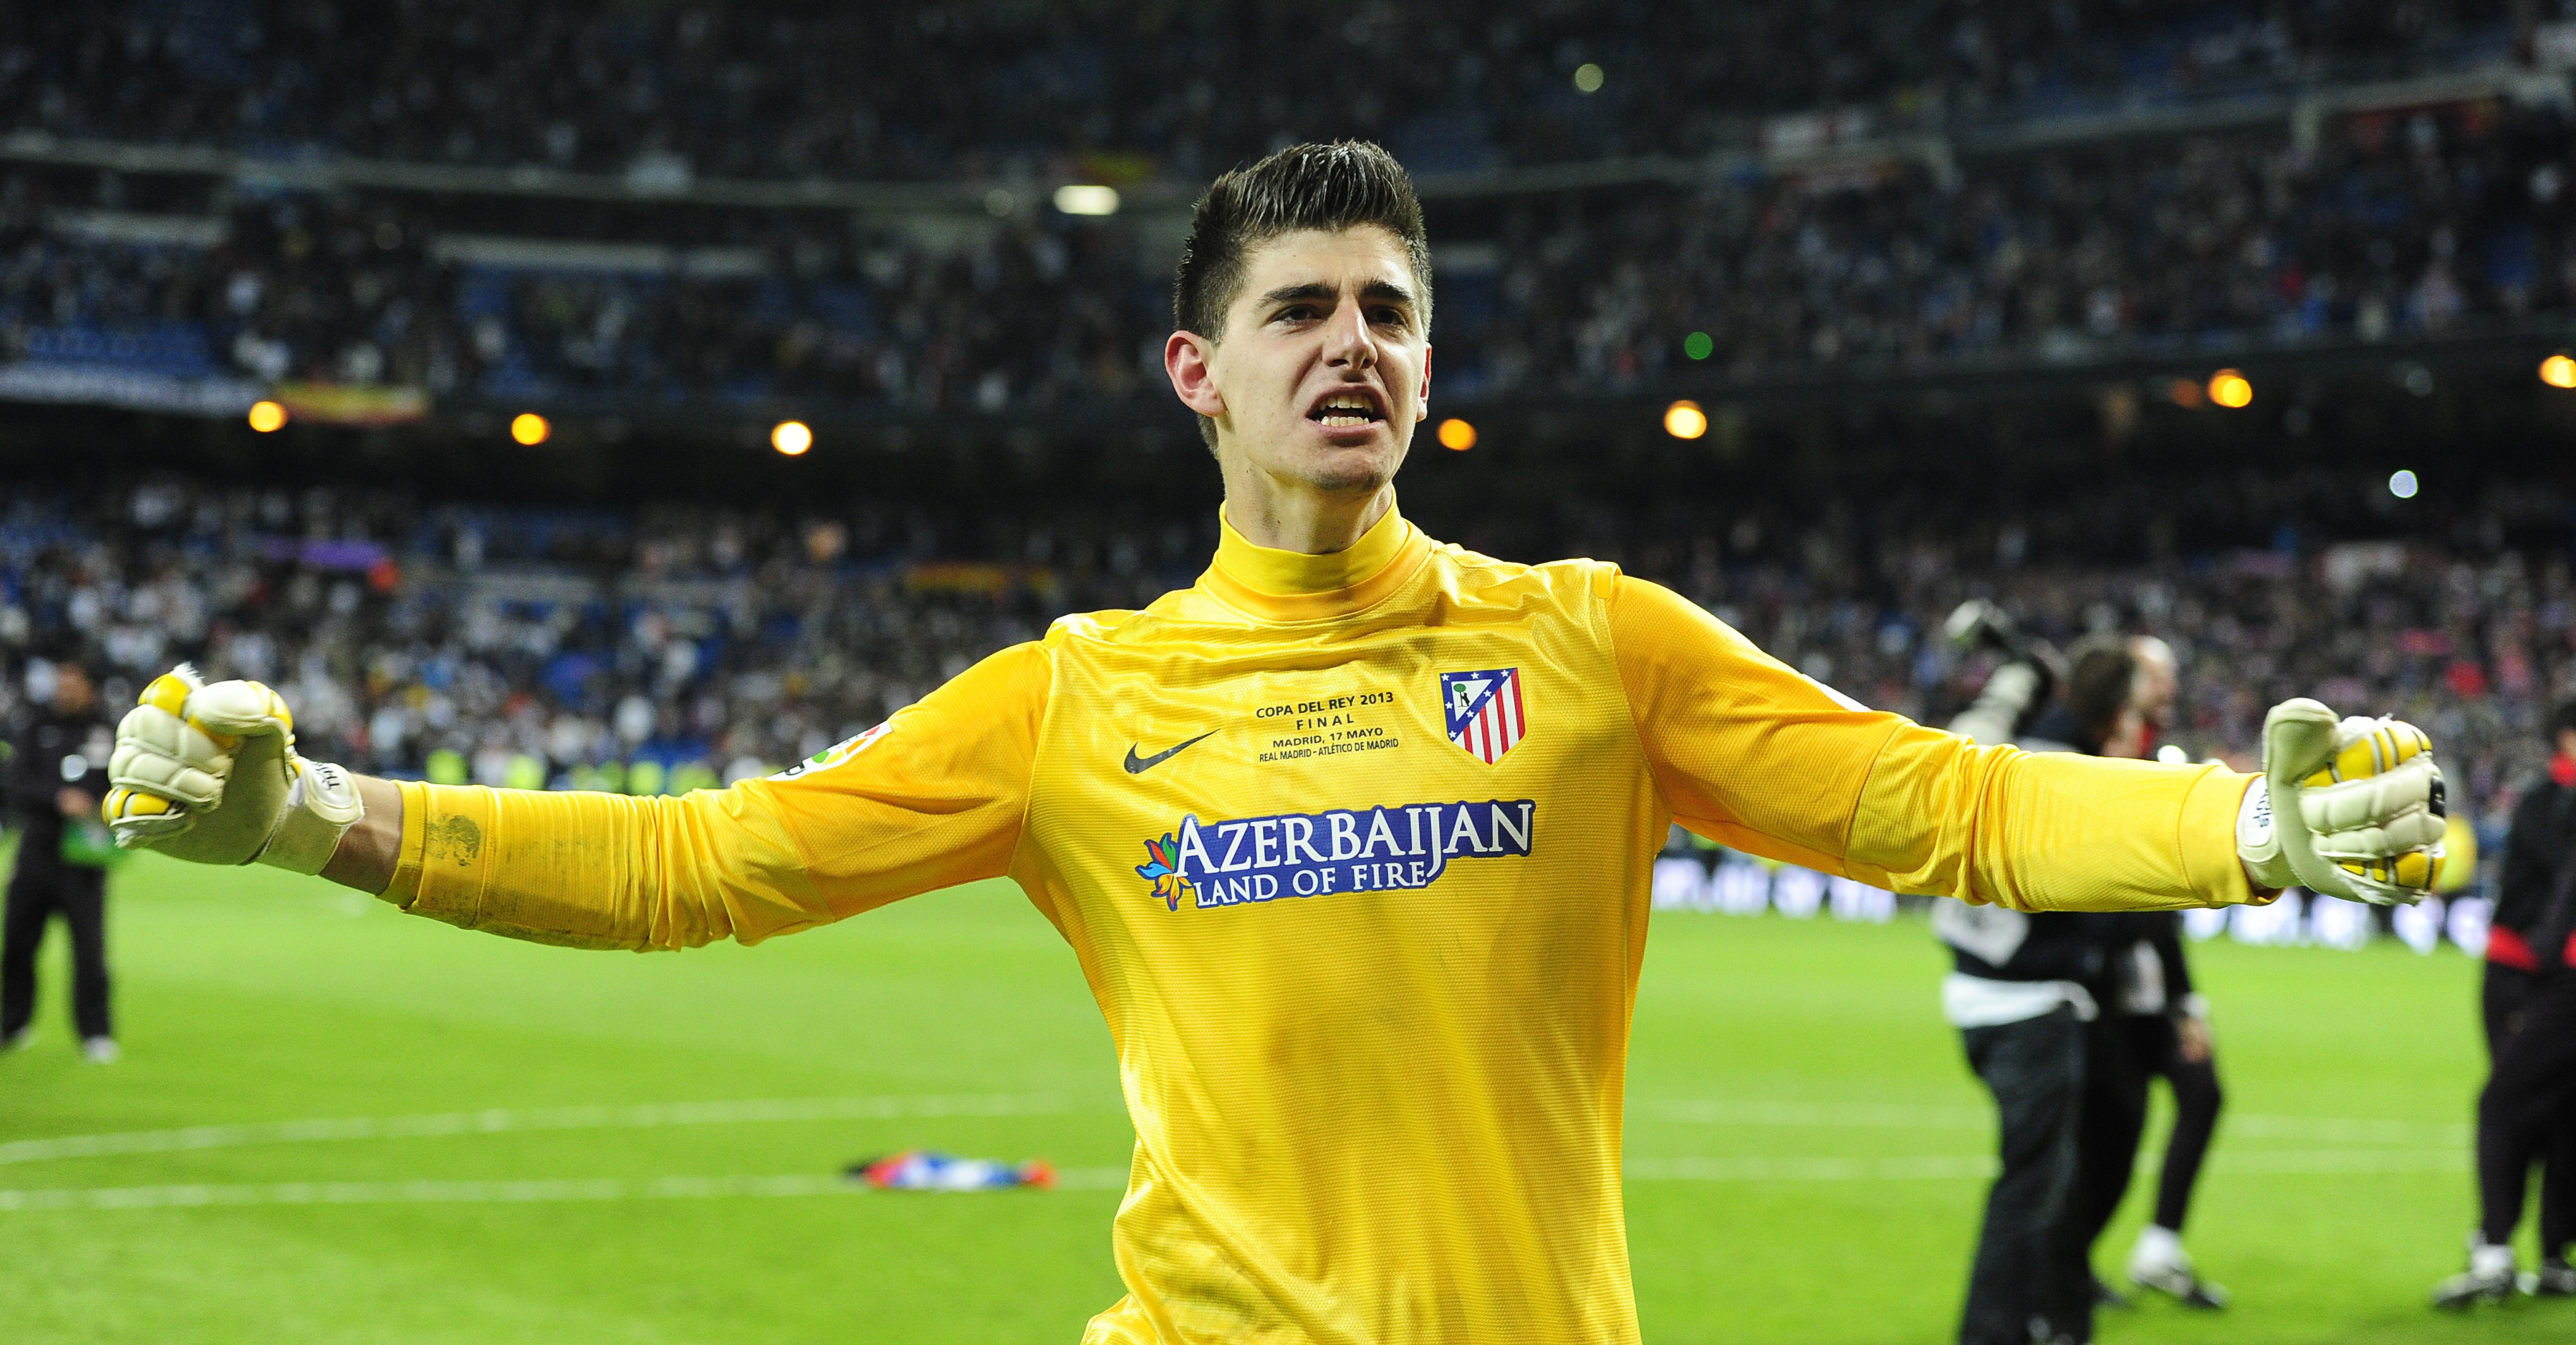 Facebook Wallpaper Quotes From Soccer Players Wallpaper Football Thibaut Courtois Soccer The Best